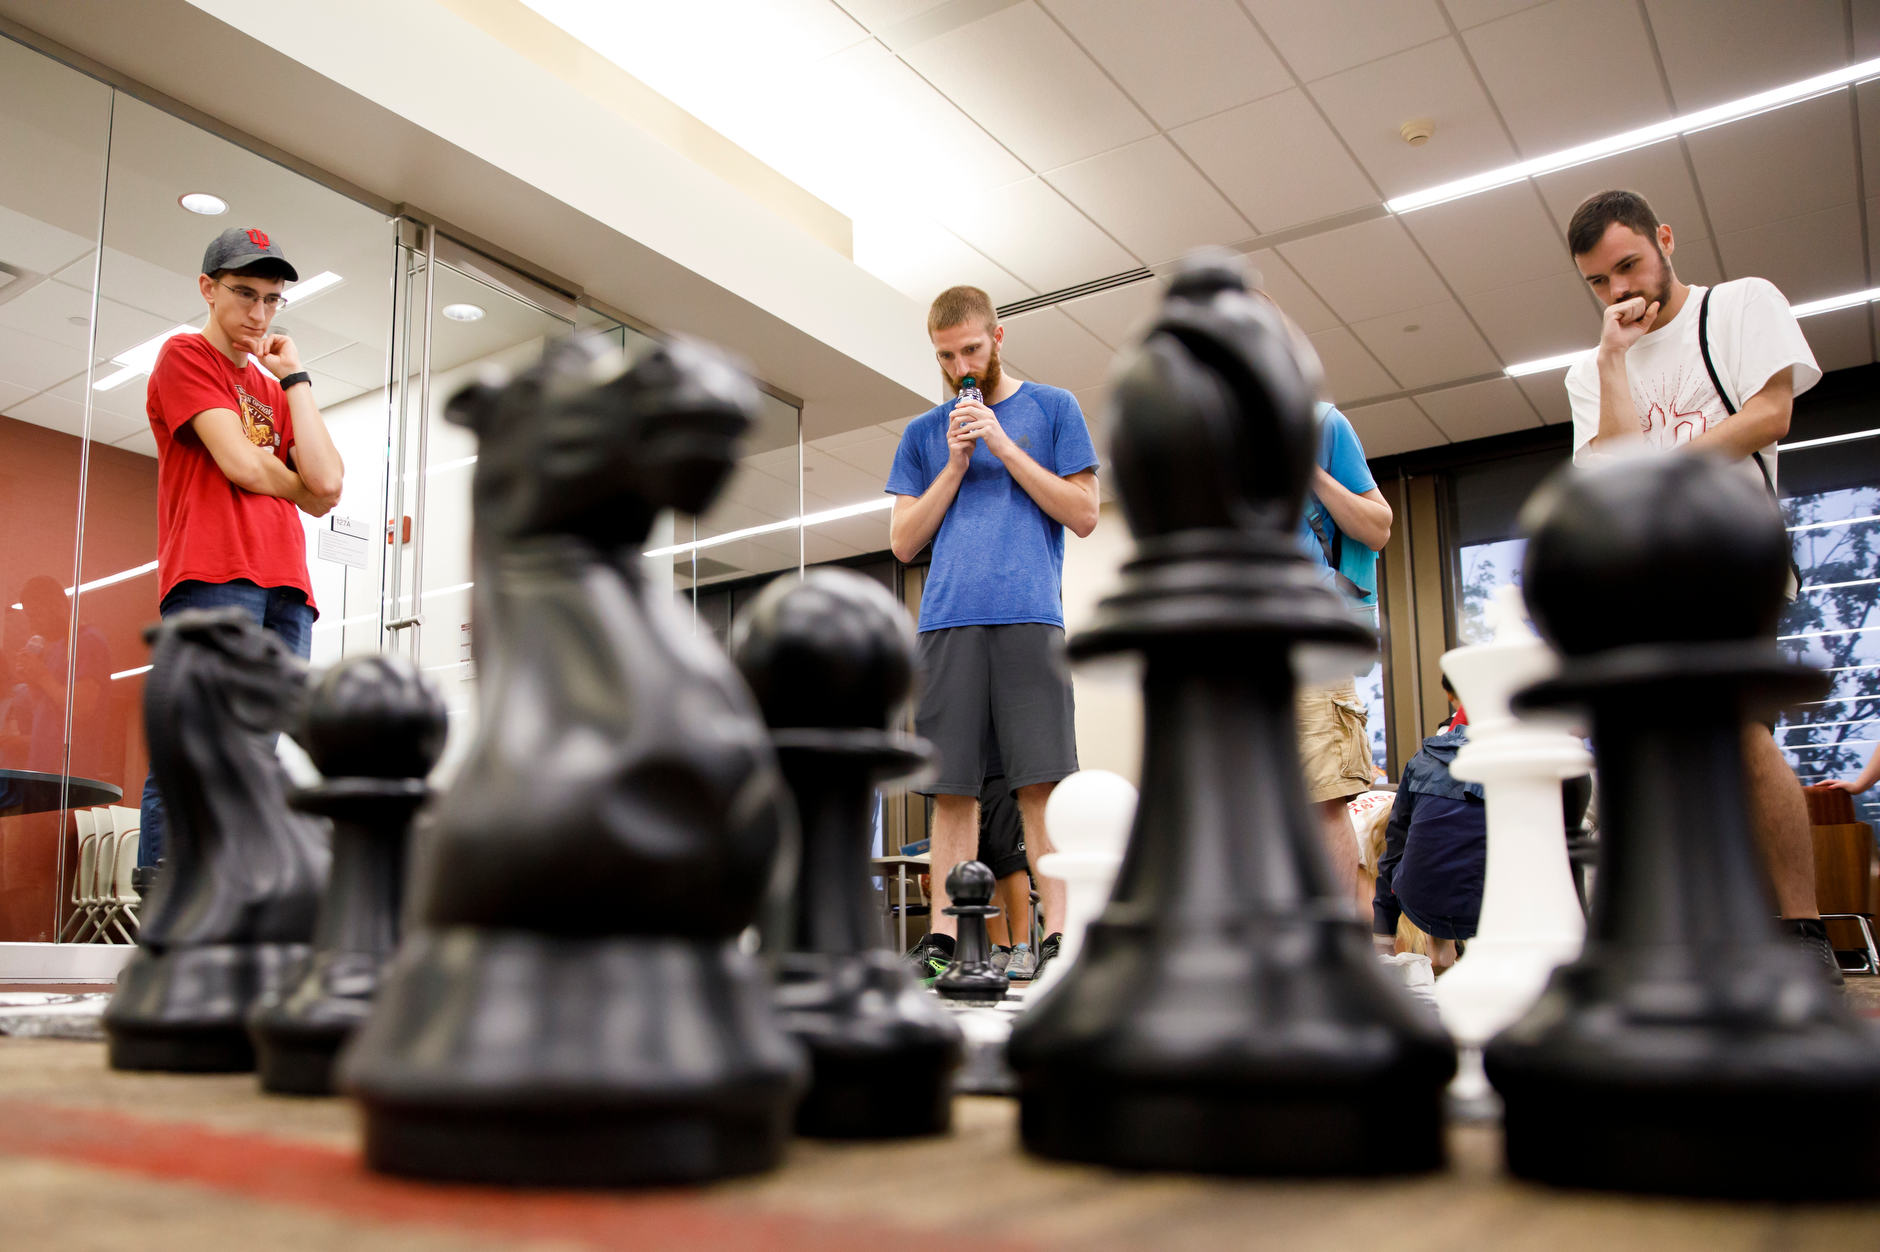 Students pay chess during the Herman B House Party in the Wells Library at IU Bloomington on Thursday, Aug. 22, 2019. (James Brosher/Indiana University)